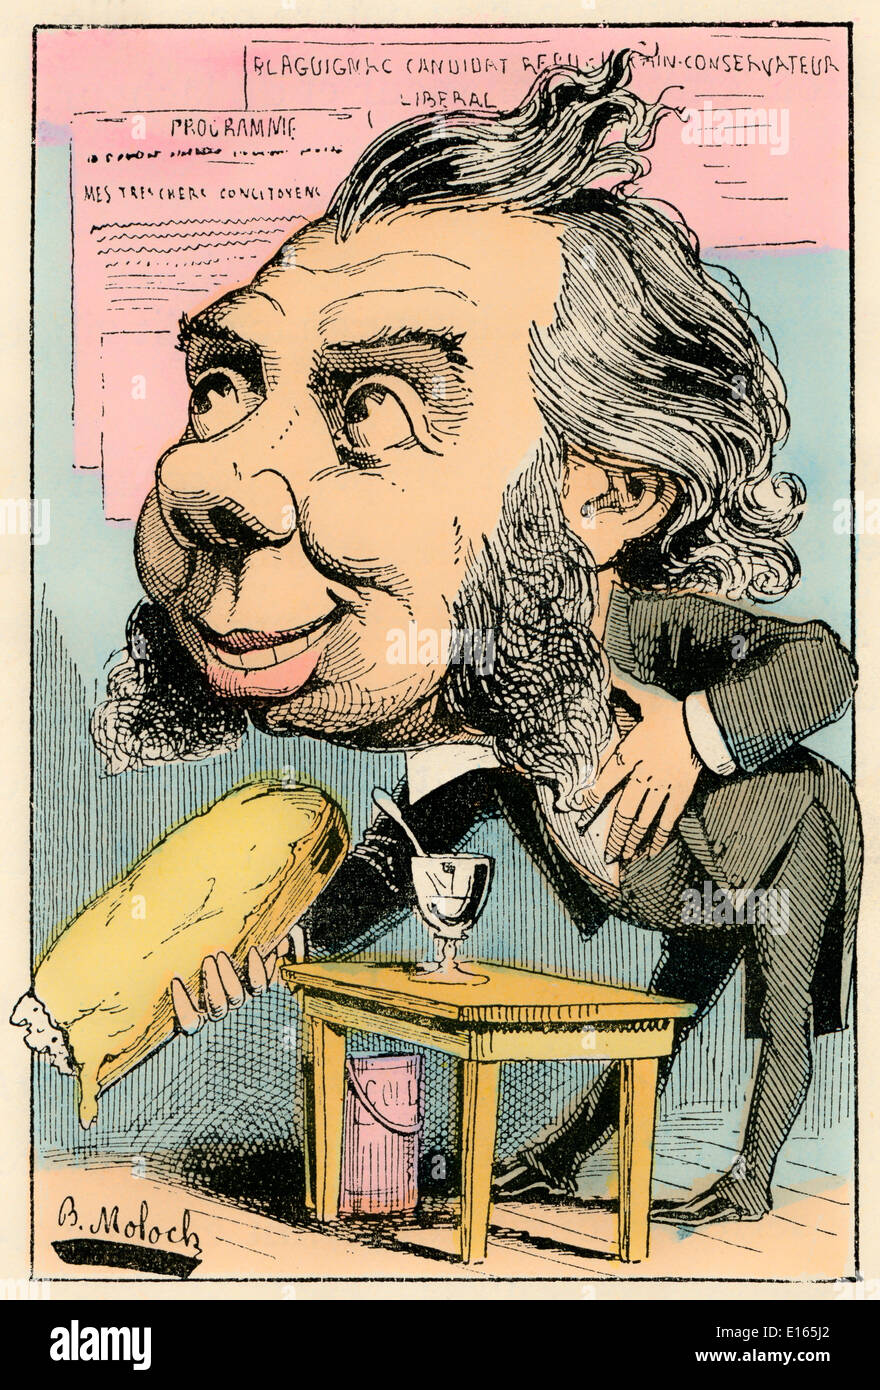 The candidate, personified as Louis-Theodore Blagignac, political caricature, 1882, by Alphonse Hector Colomb pseudonym Stock Photo